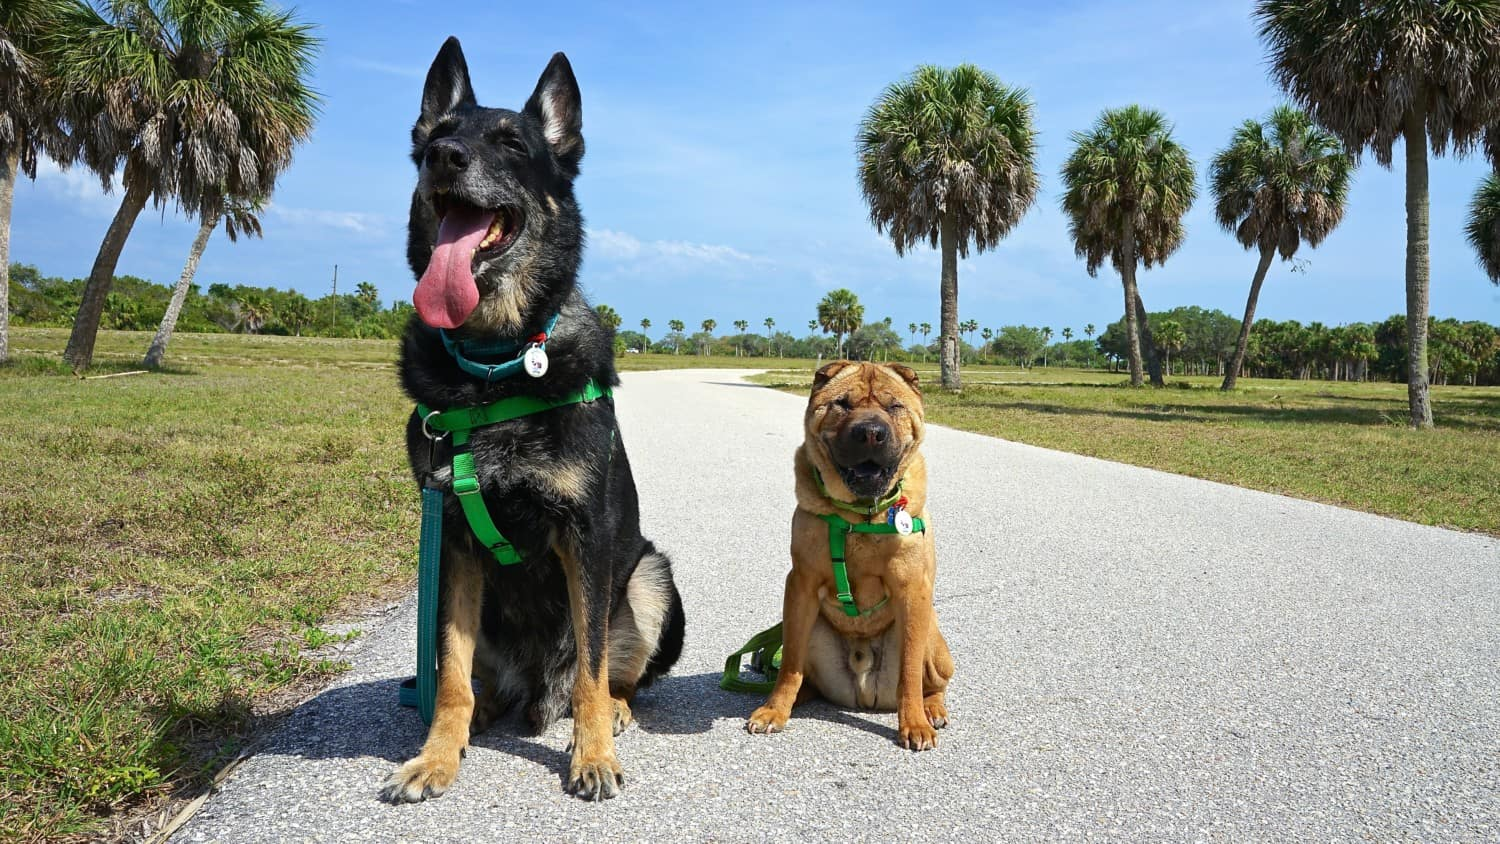 Florida's Top Pet Friendly Attraction: Fort De Soto Park and Dog Beach | GoPetFriendly.com